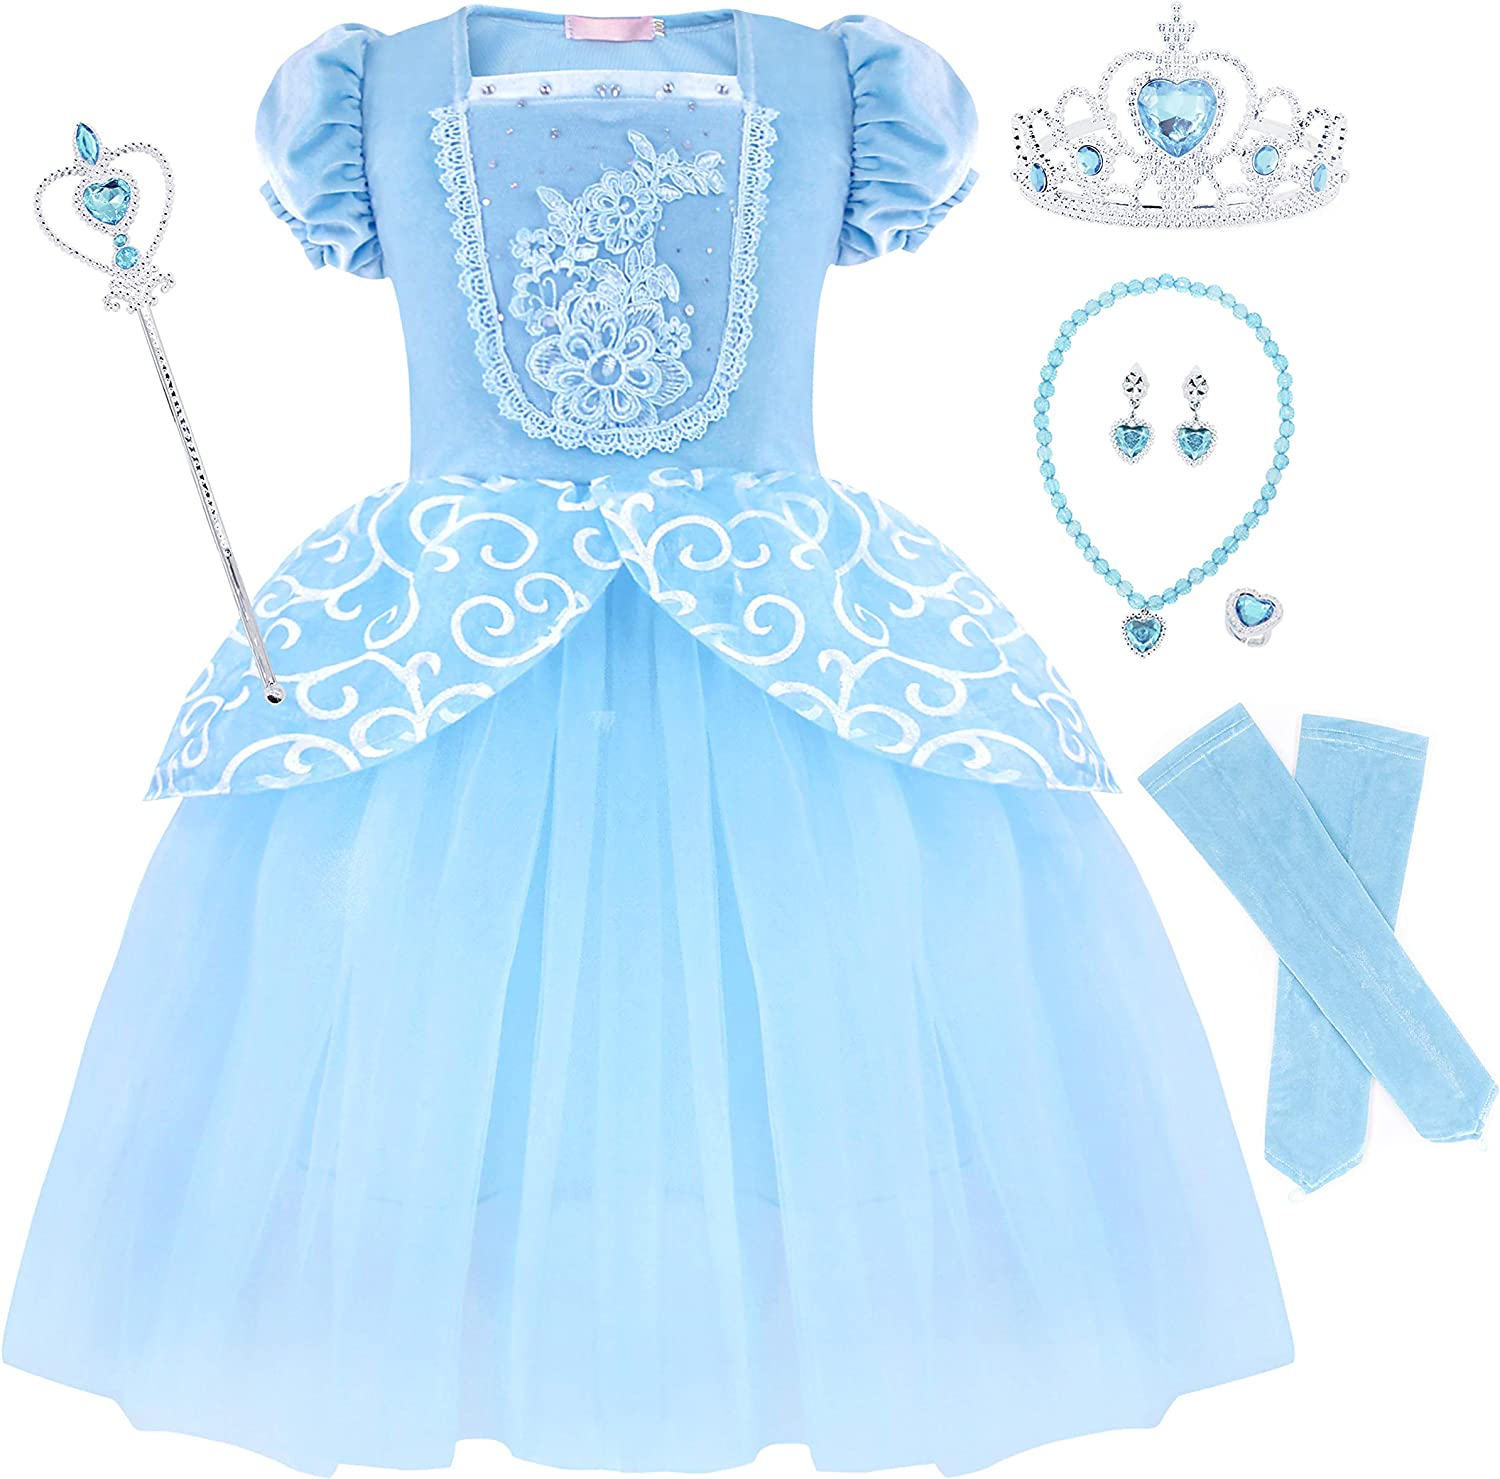 HenzWorld Little Girls Dresses Costume Cape Clothes Princess Halloween Cosplay Party Outfits Velvet Long Sleeve